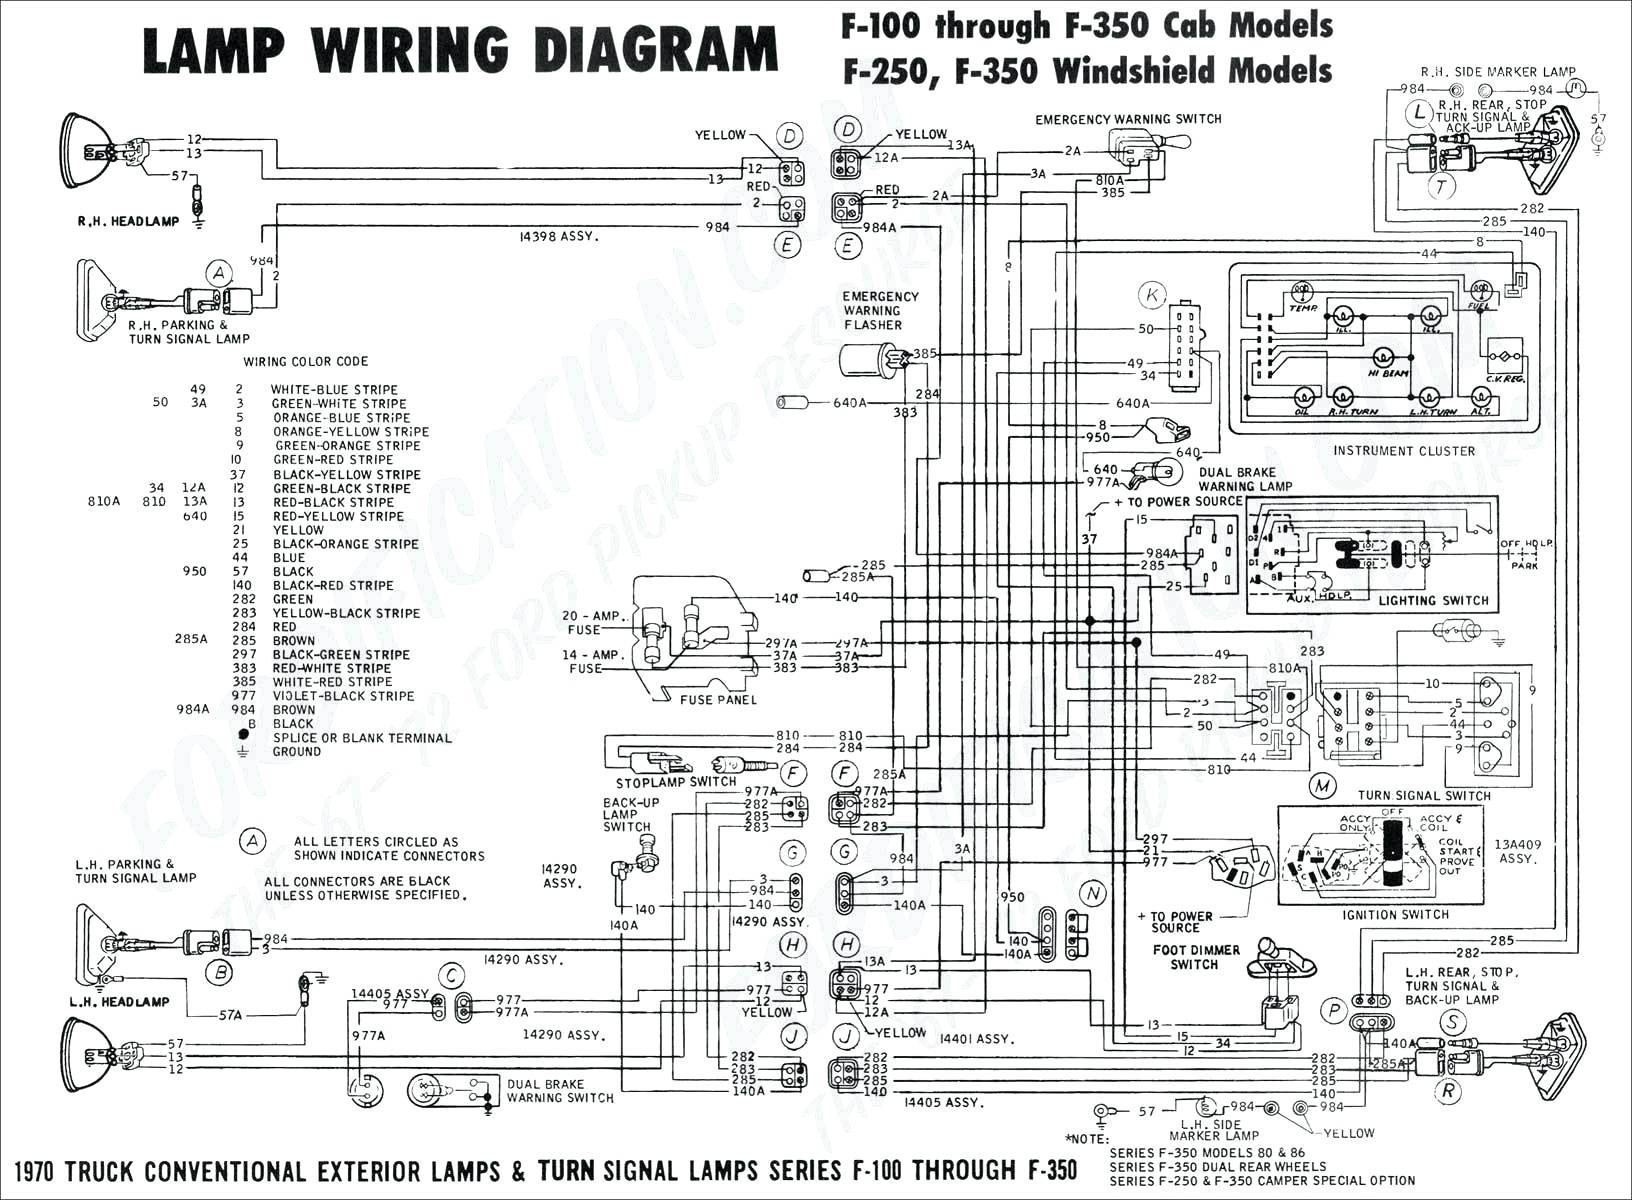 7 3 Powerstroke Parts Diagram 2001 F250 Engine Diagram Experts Wiring Diagram • Of 7 3 Powerstroke Parts Diagram 6 0 Powerstroke Injector Wiring Diagram Reference Wiring Harness 7 3